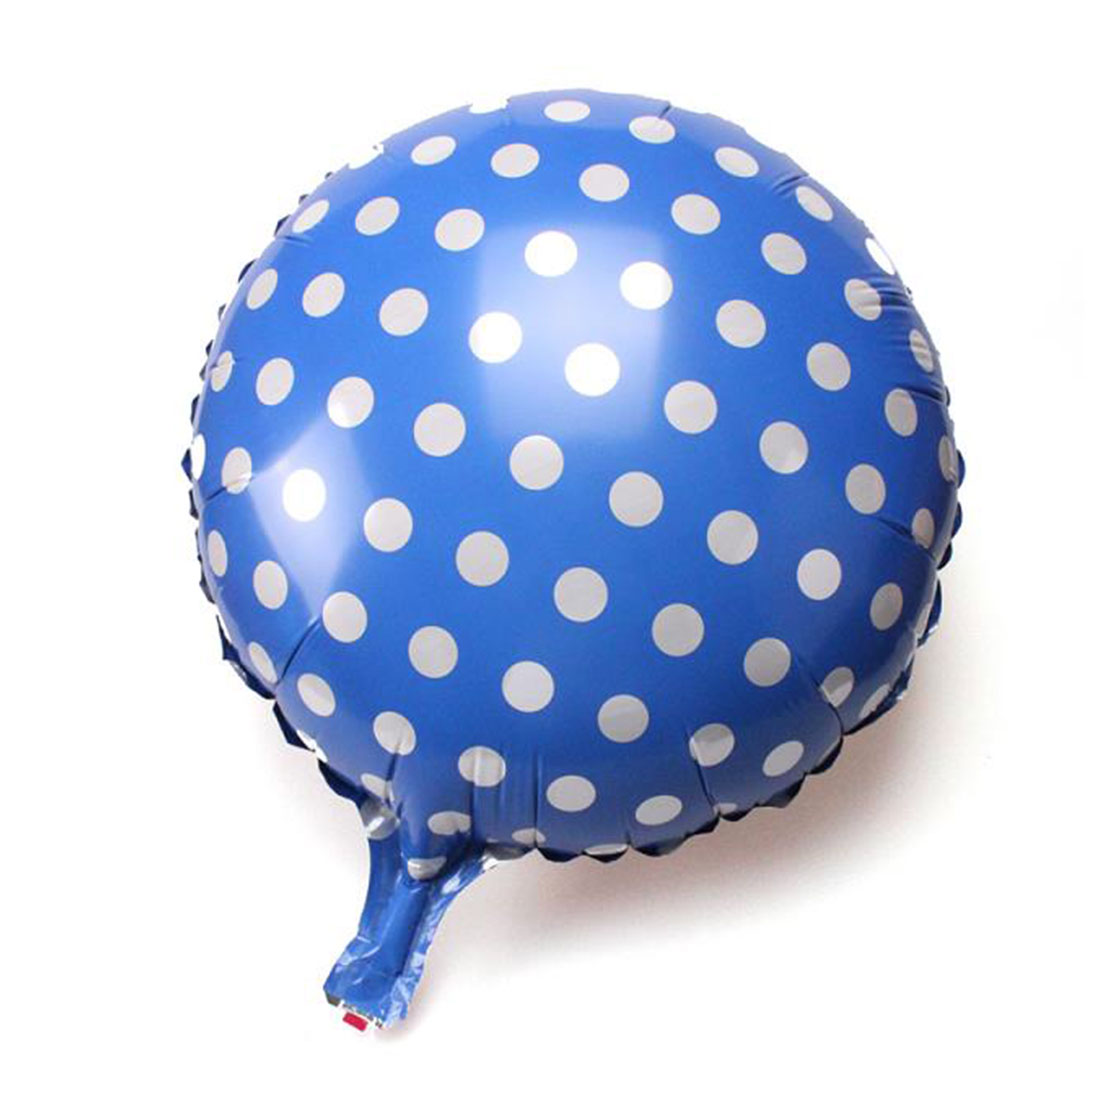 Foil Dot Printed Round Shaped Balloon Wedding Birthday Party Celebration Decor Blue 18 Inch